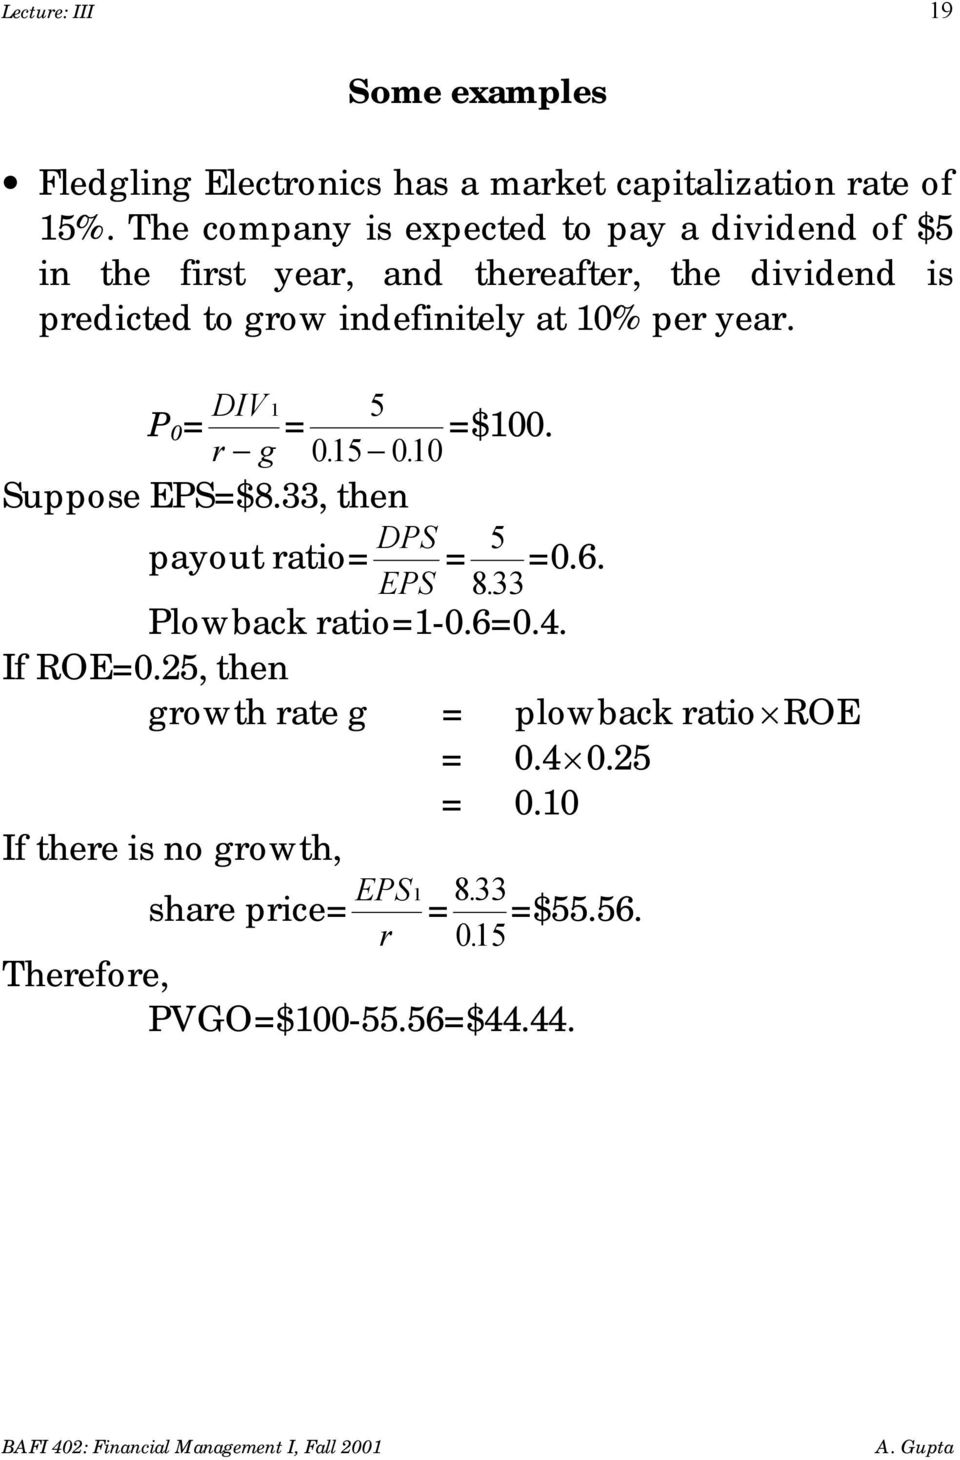 10% per year. P 0 = DIV 1 r g = 5 =$100. 015. 010. Suppose EPS=$8.33, then payout ratio= DPS =0.6. EPS = 5 833. Plowback ratio=1-0.